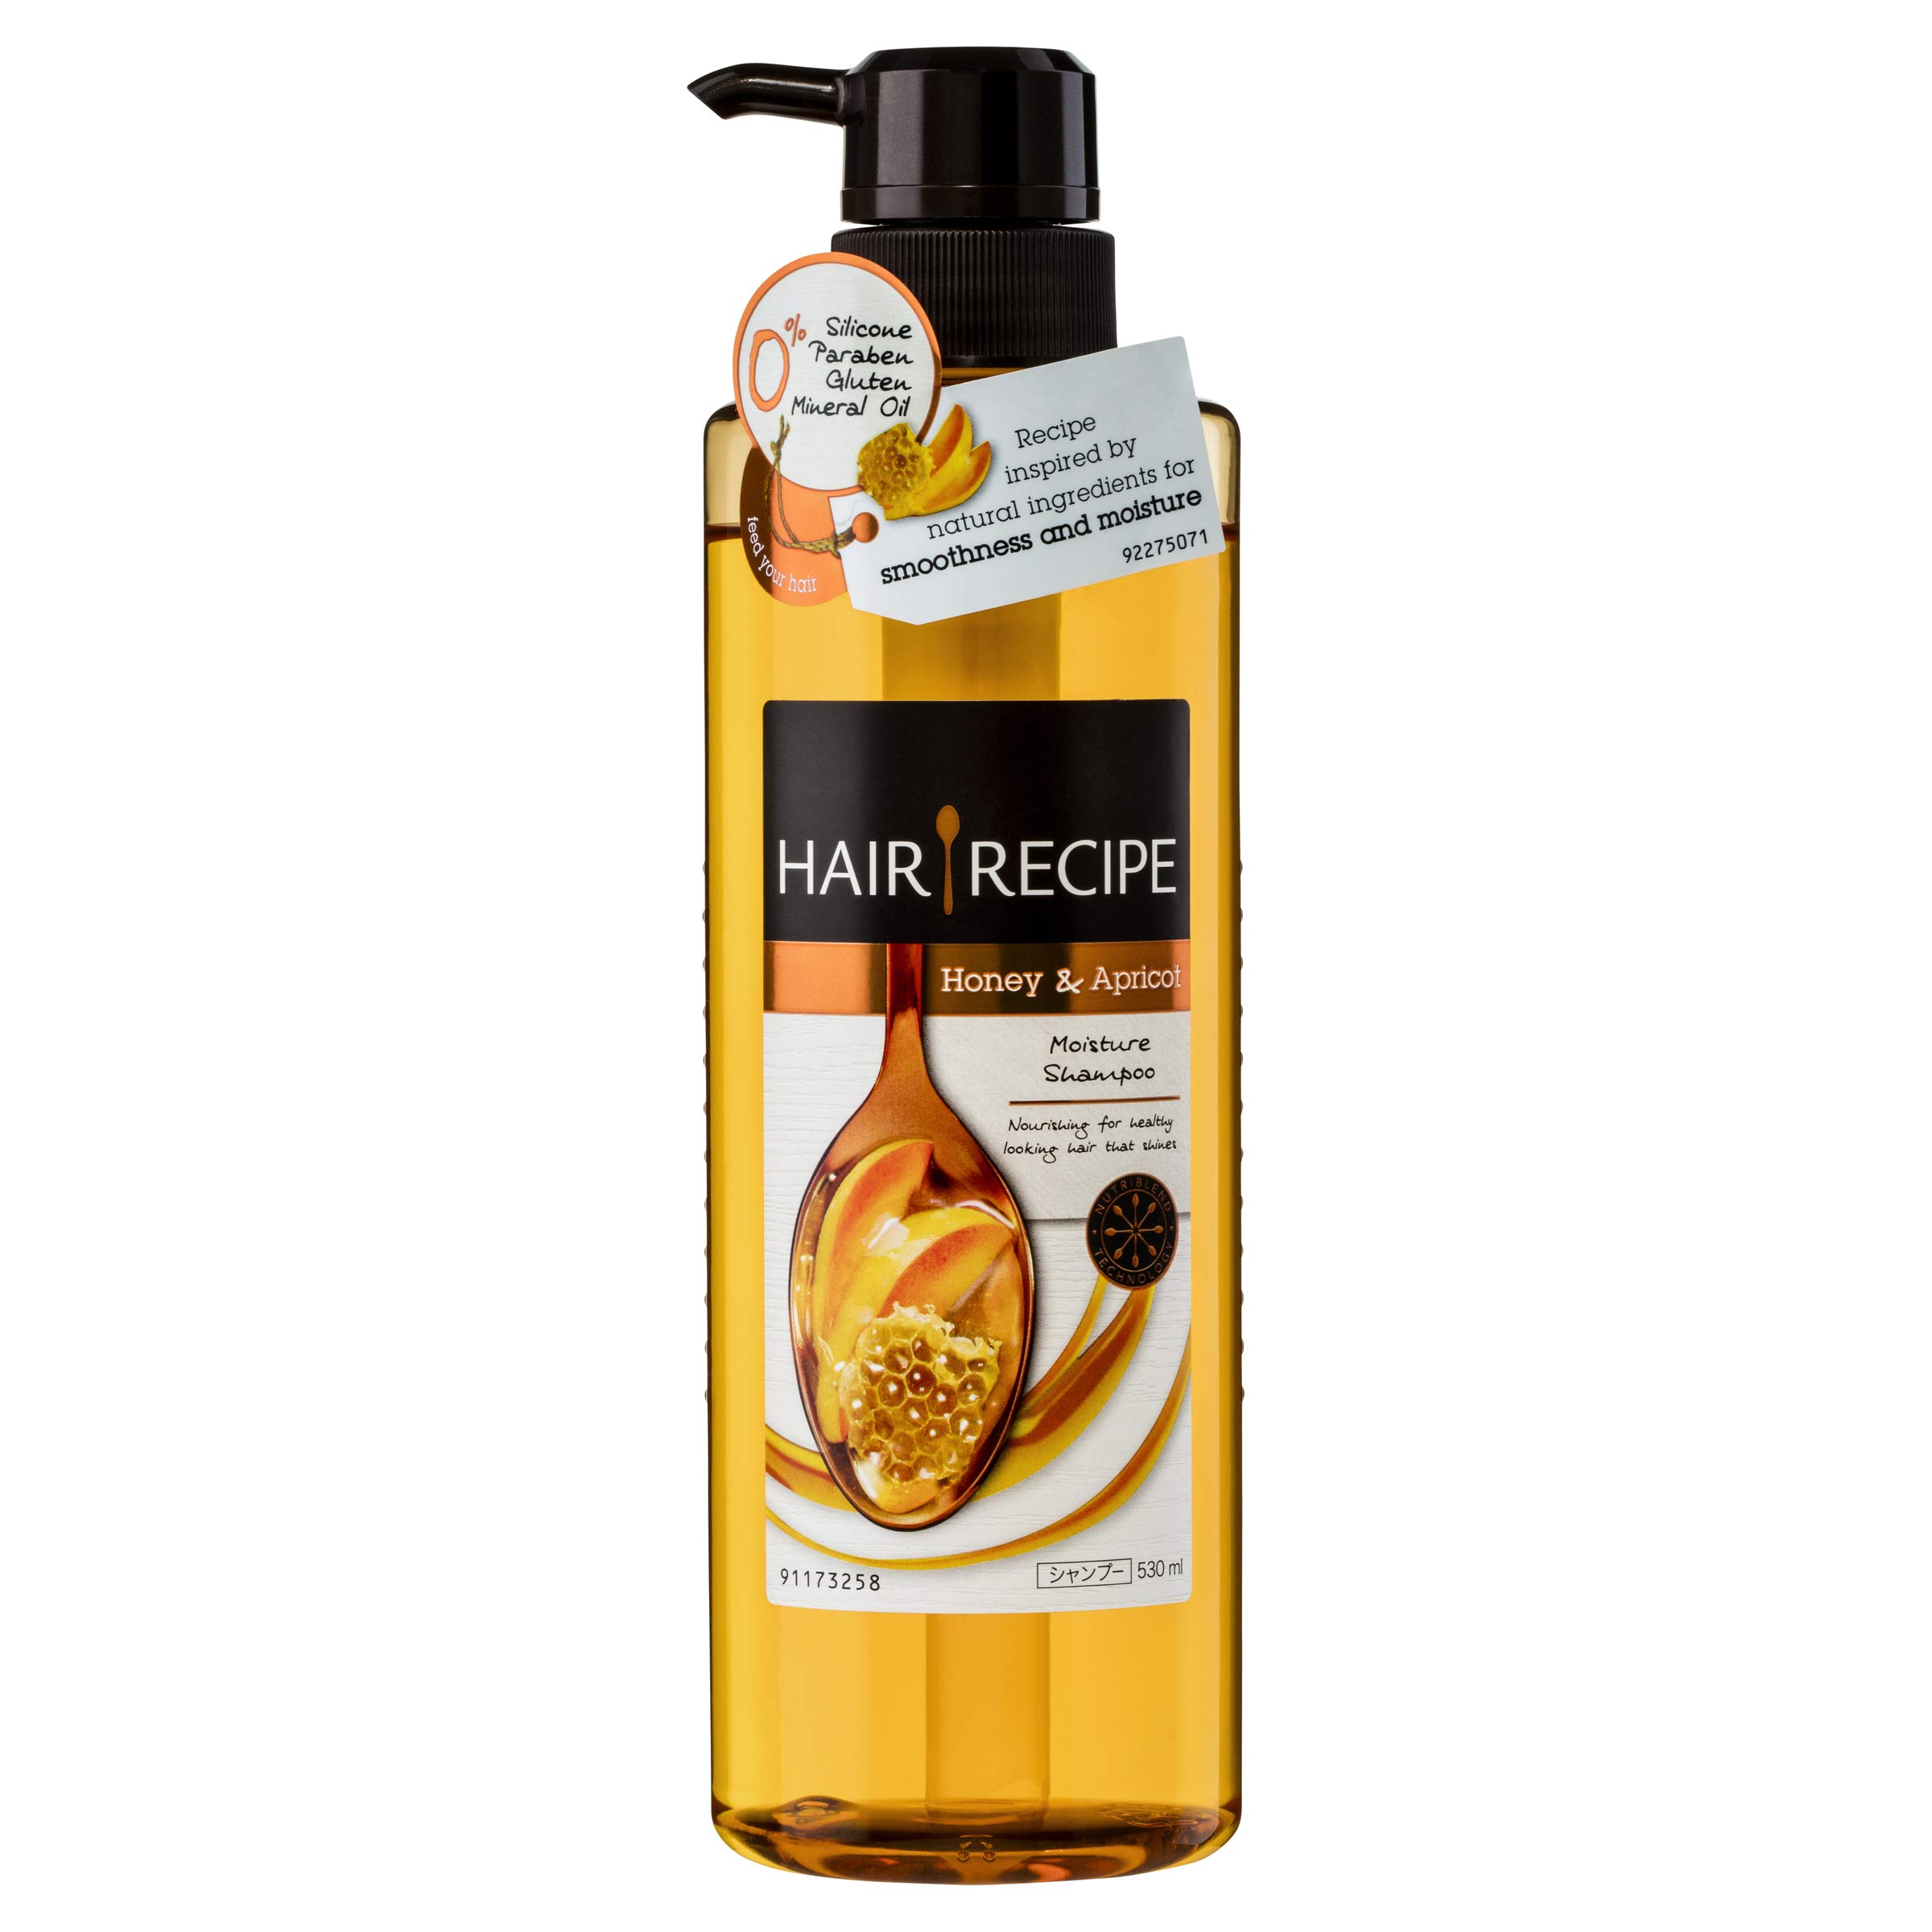 Japan Hair Products - Hair recipes shampoo Honey apricot Enriched Moisture recipe body pump 530ml *AF27* by HAIR GOODS